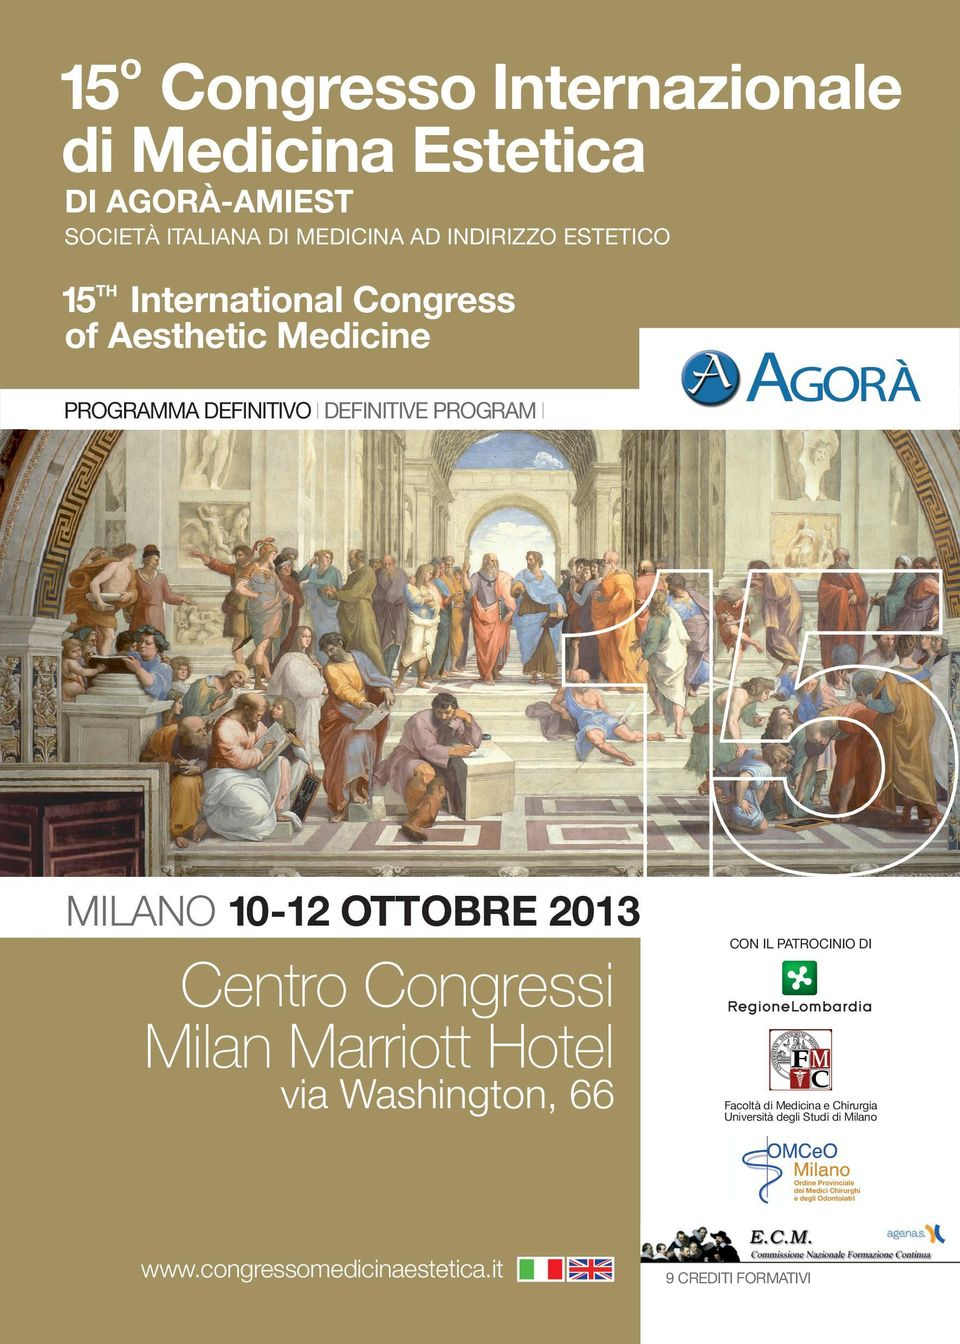 PROGRAM MLANO 10-12 ottobre 2013 Centro Congressi Milan Marriott Hotel via Washington, 66 www.congressomedicinaestetica.